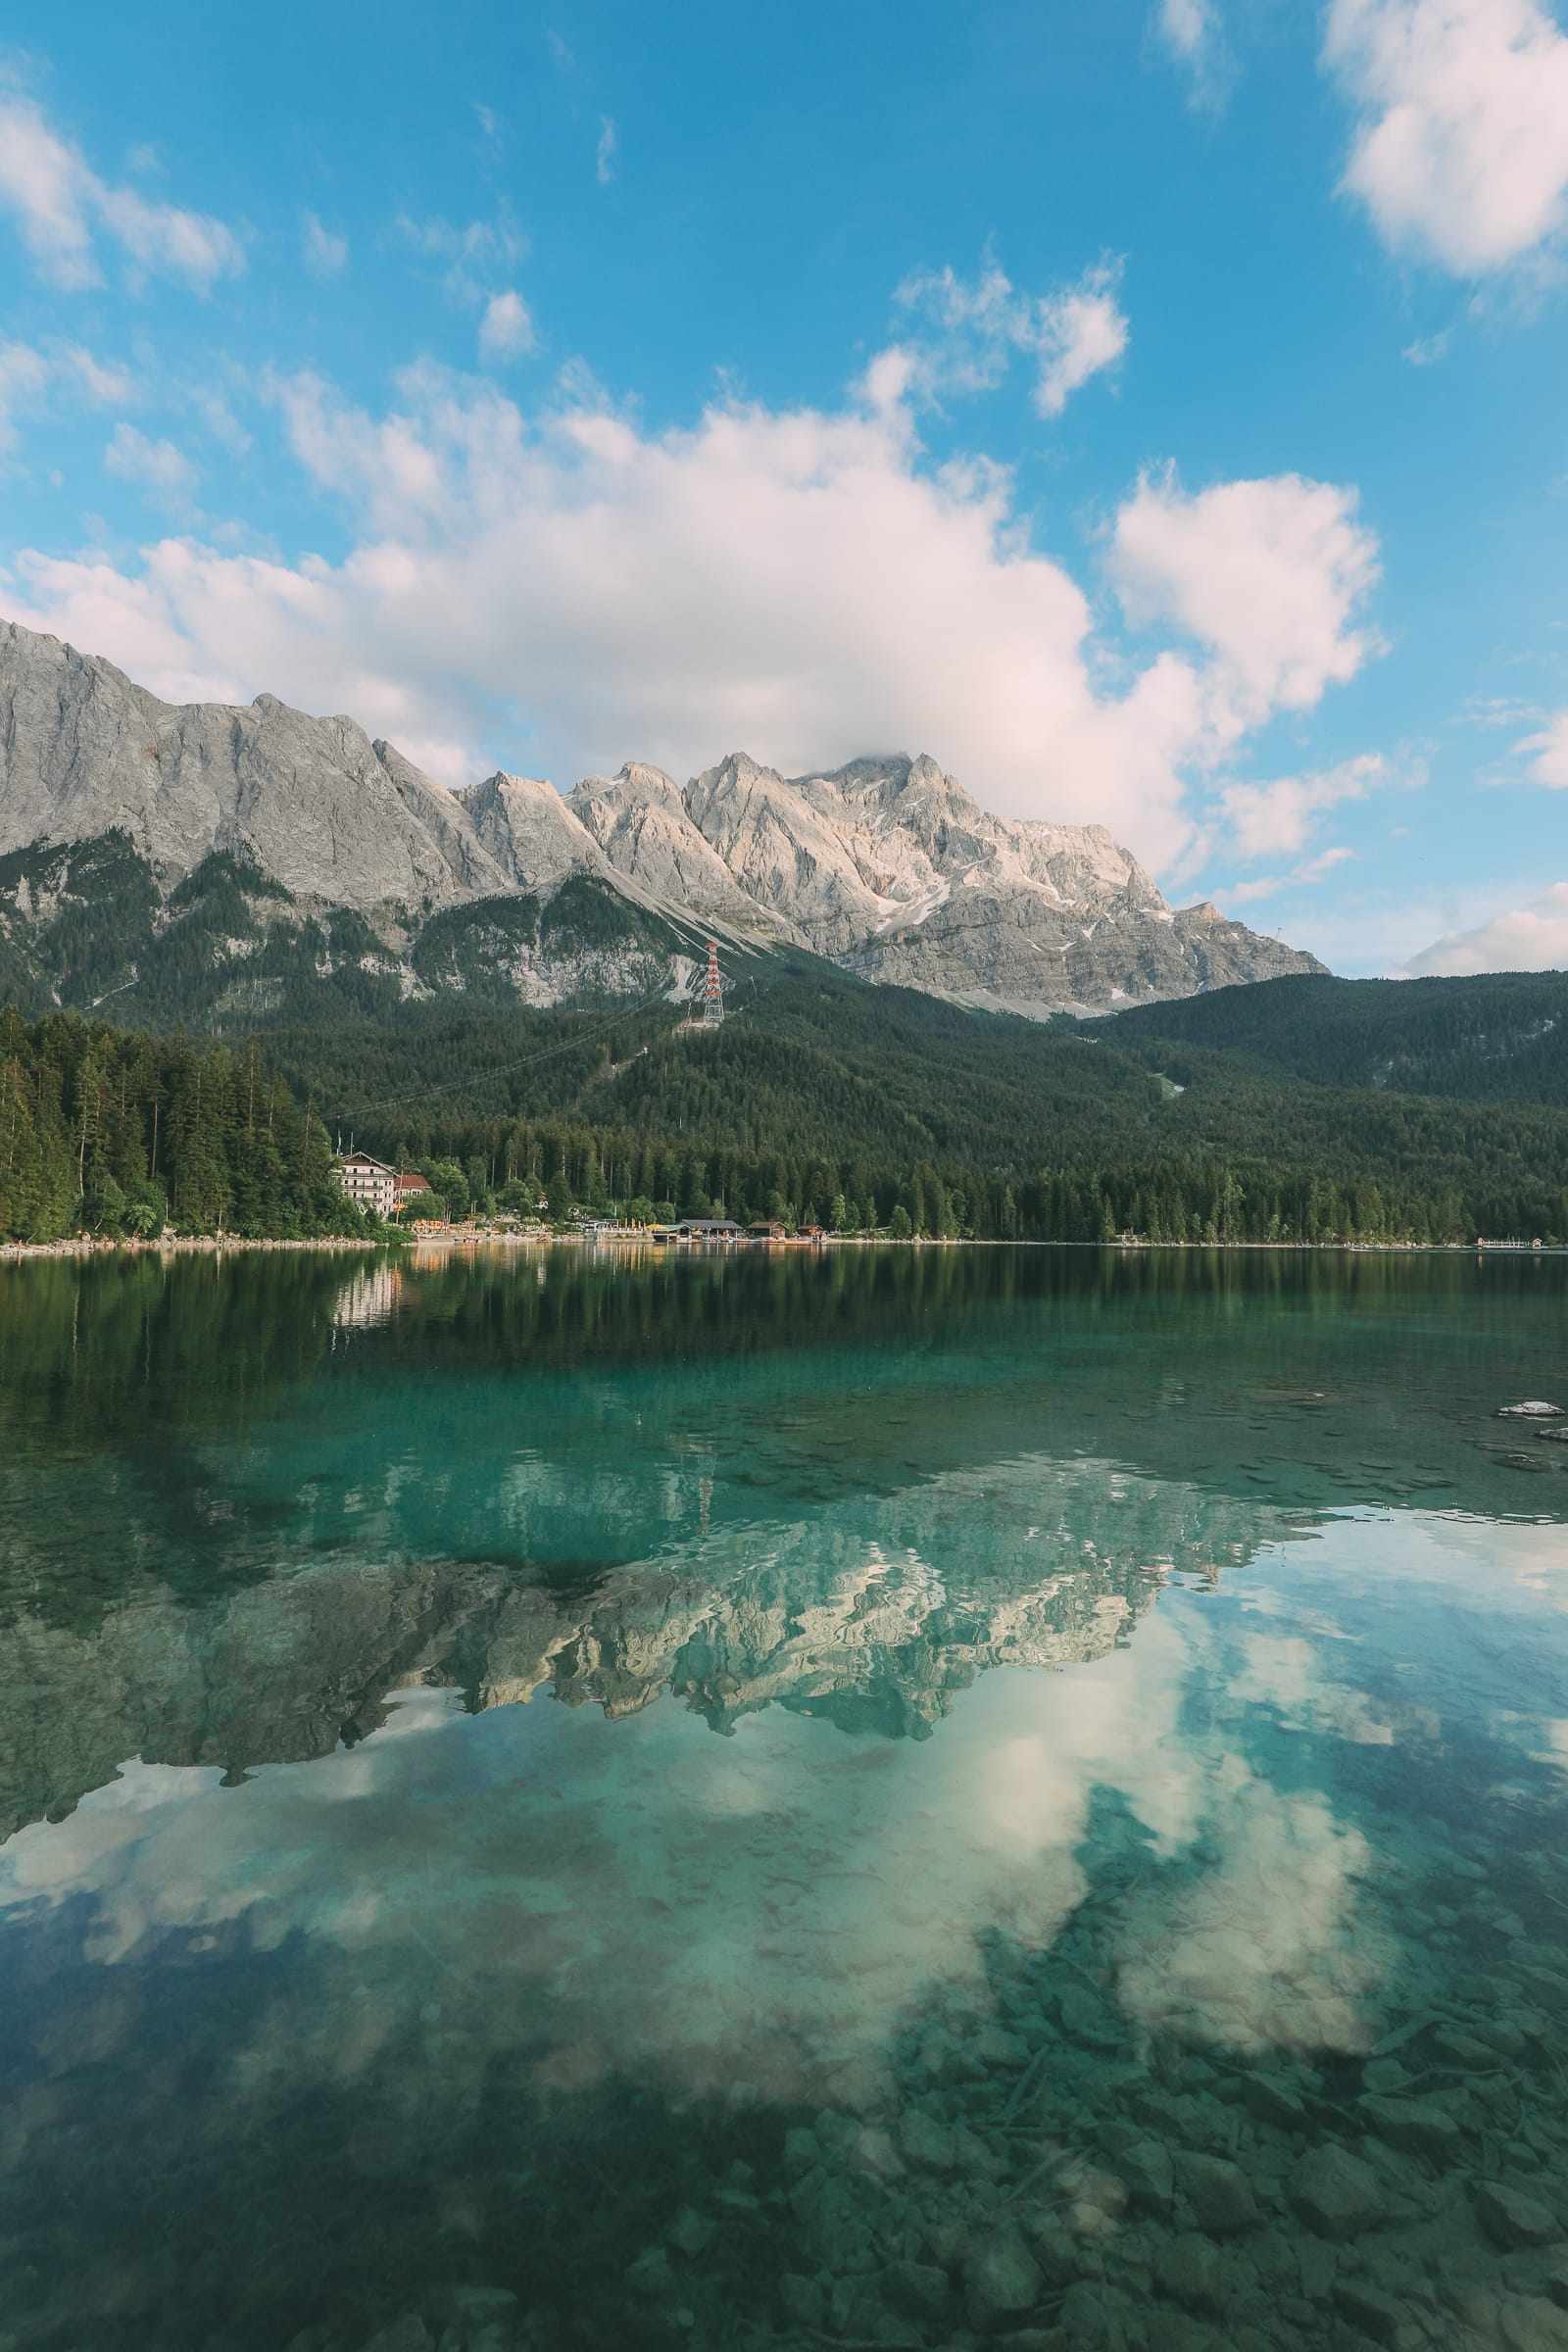 Zugspitze And Eibsee - The Tallest Mountain And One Of The Most Beautiful Lakes In Germany! (40)